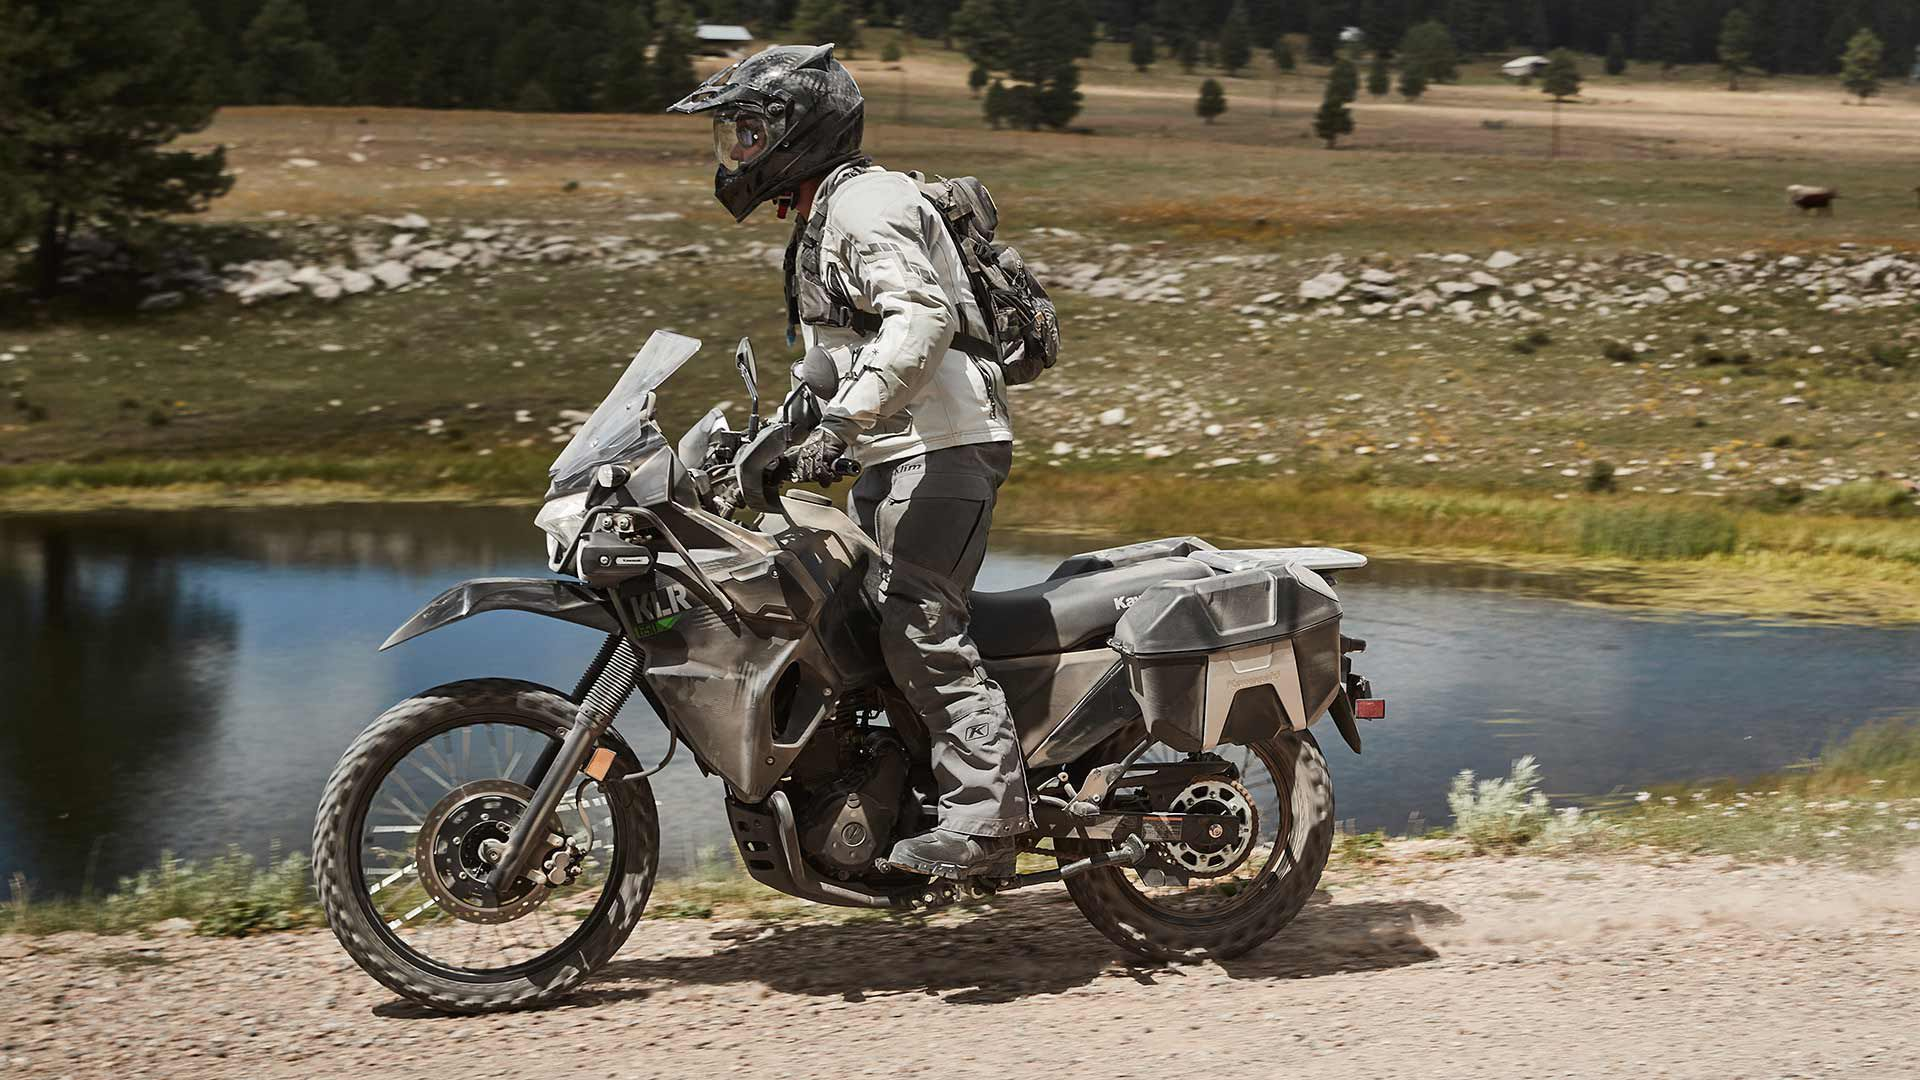 Kawasaki has managed to update the KLR650 without losing that do-it-all character that has made it a success for the past 34 years.